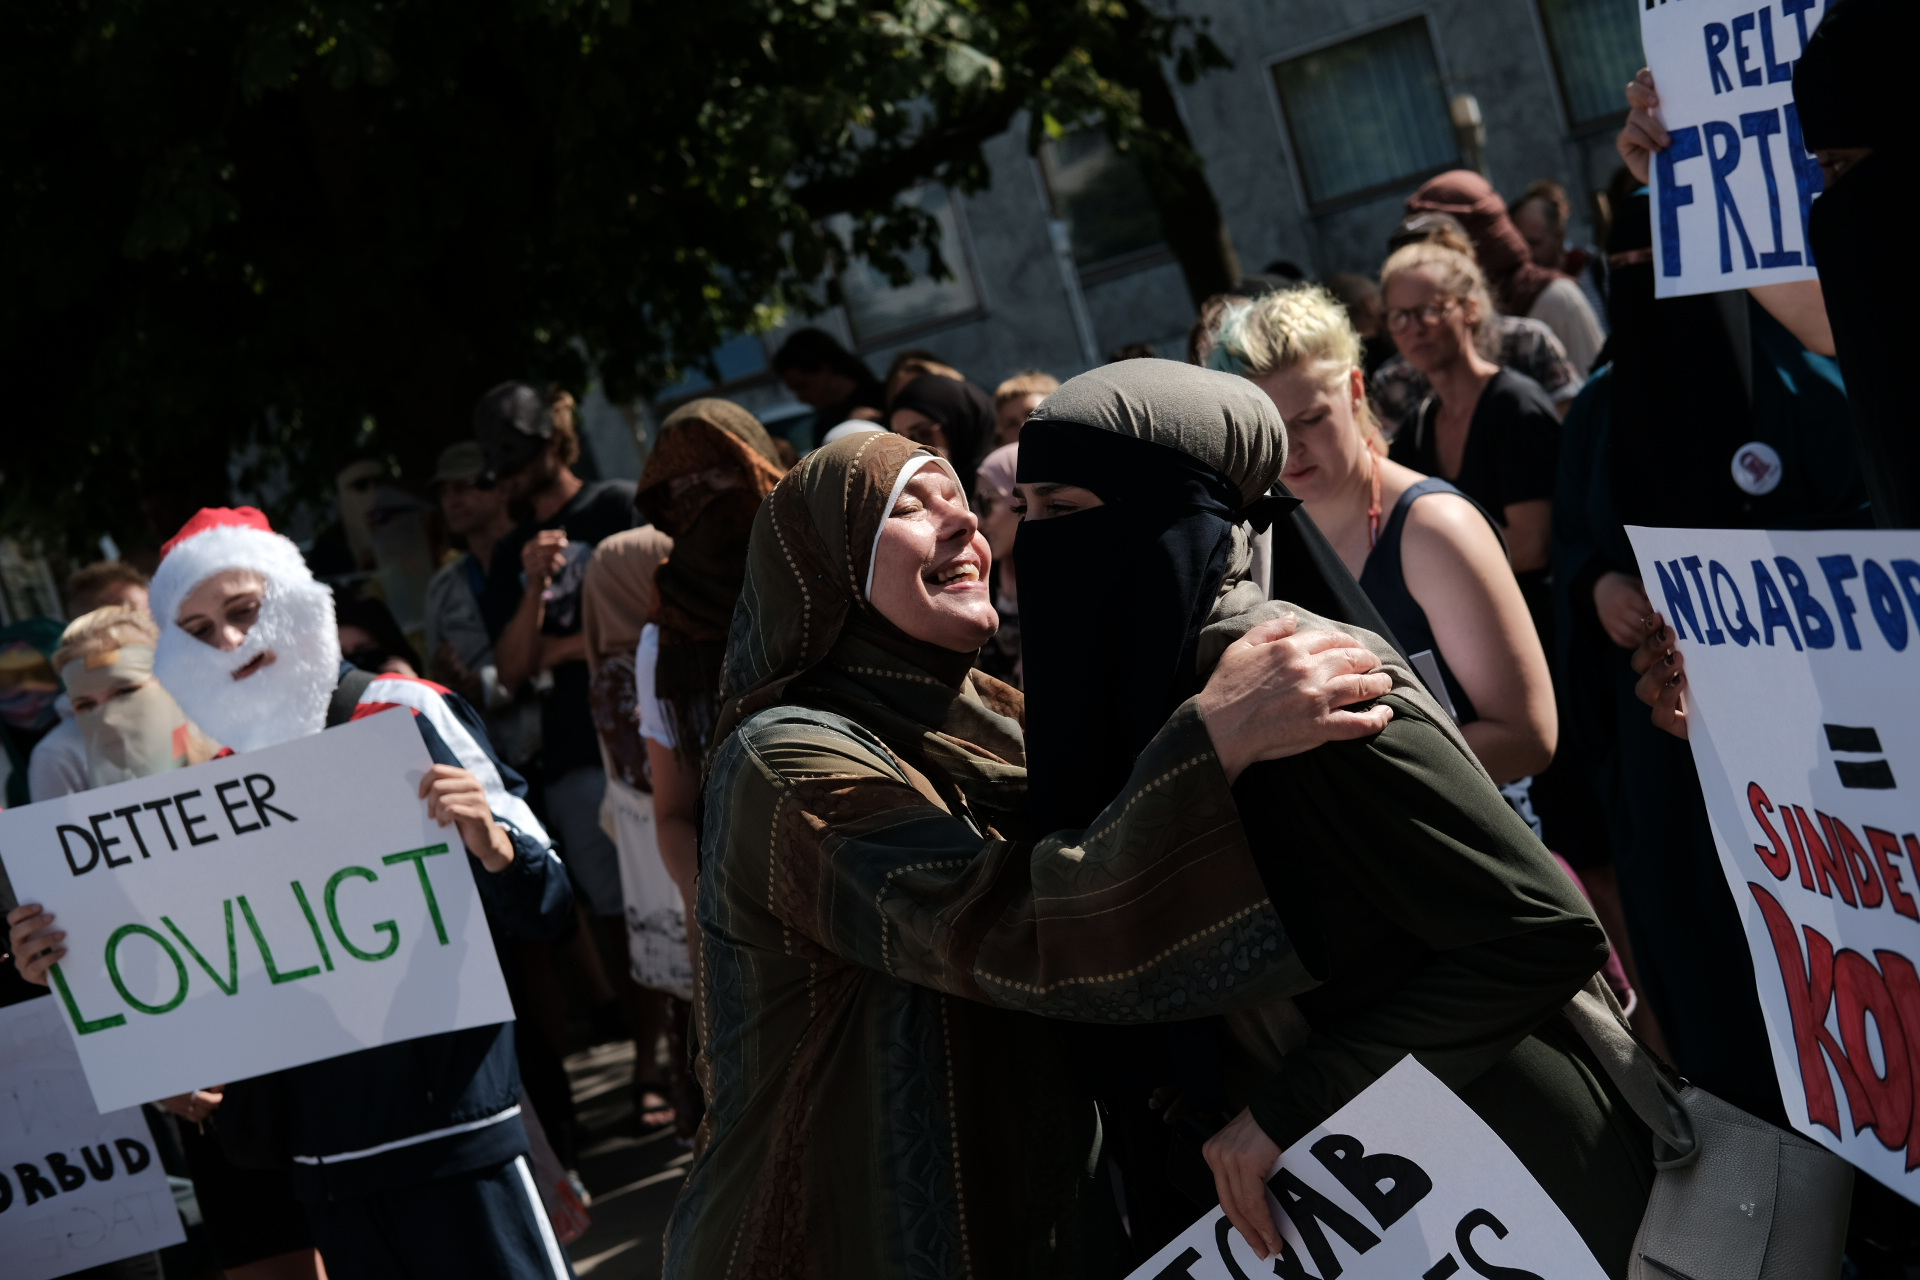 Thousands of people protest in Aarhus, Denmark, on August 1, 2018 in defiance of the Danish Governments ban on the burka and niqab.